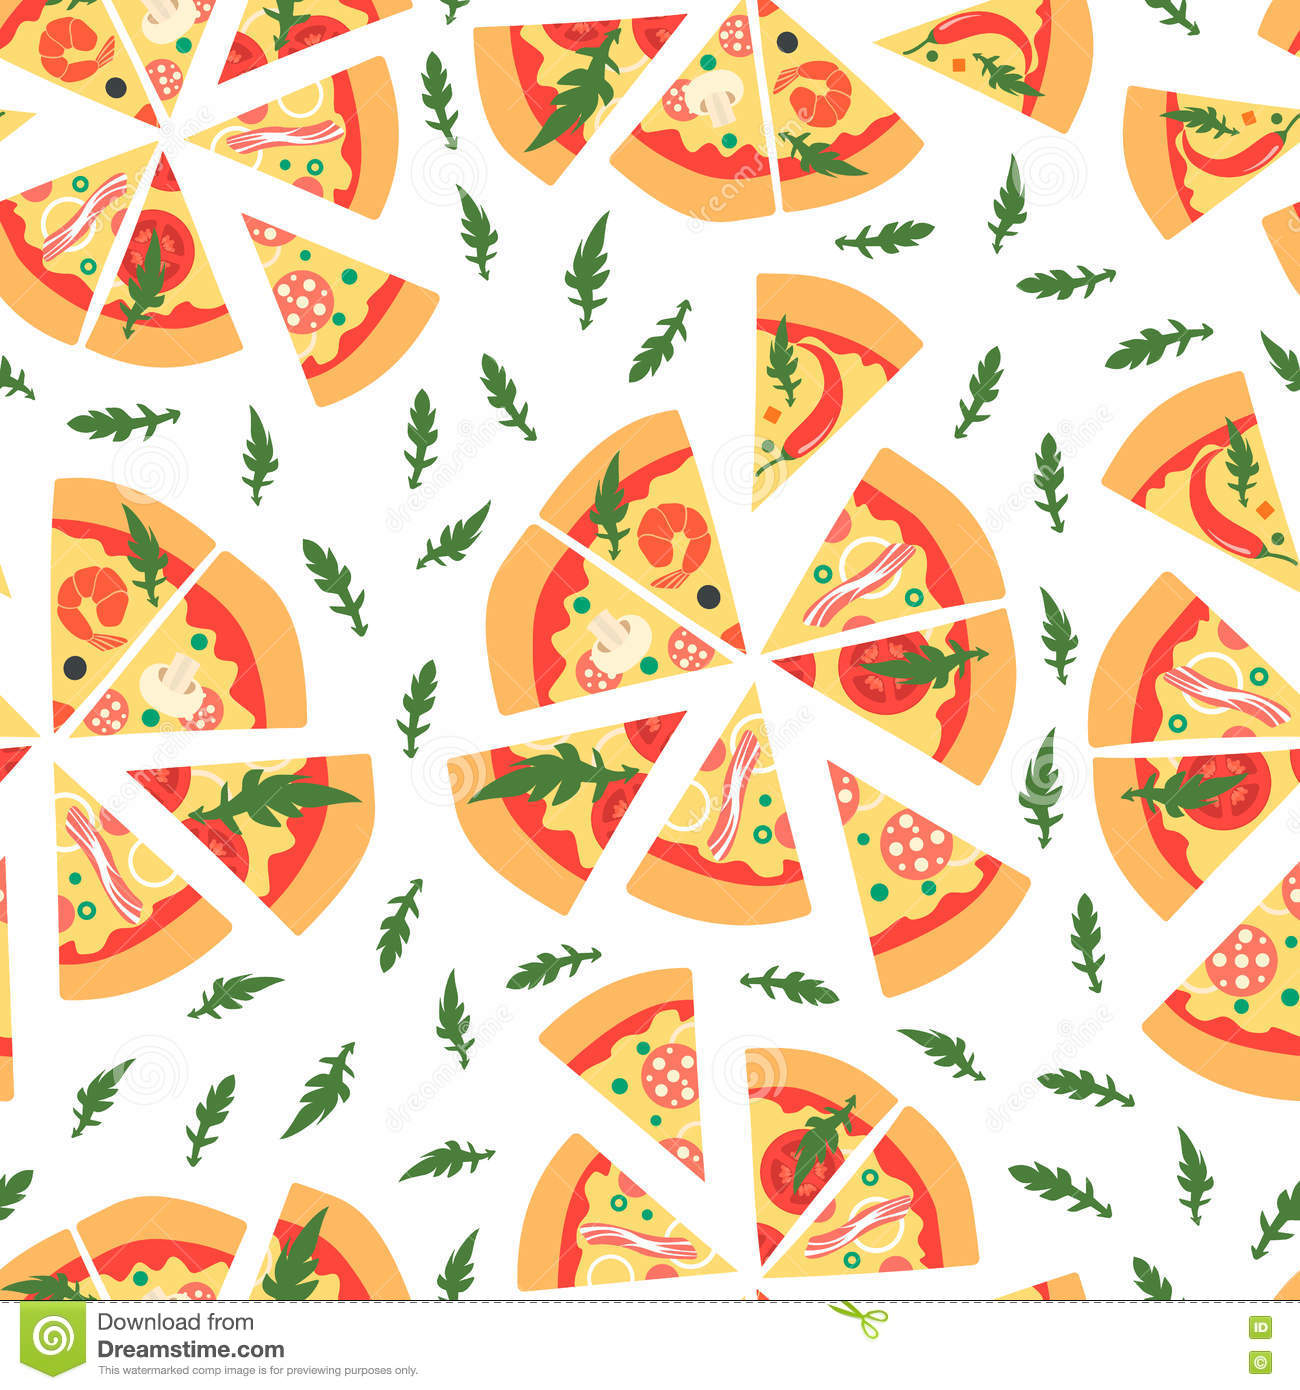 repeating pizza background - photo #5